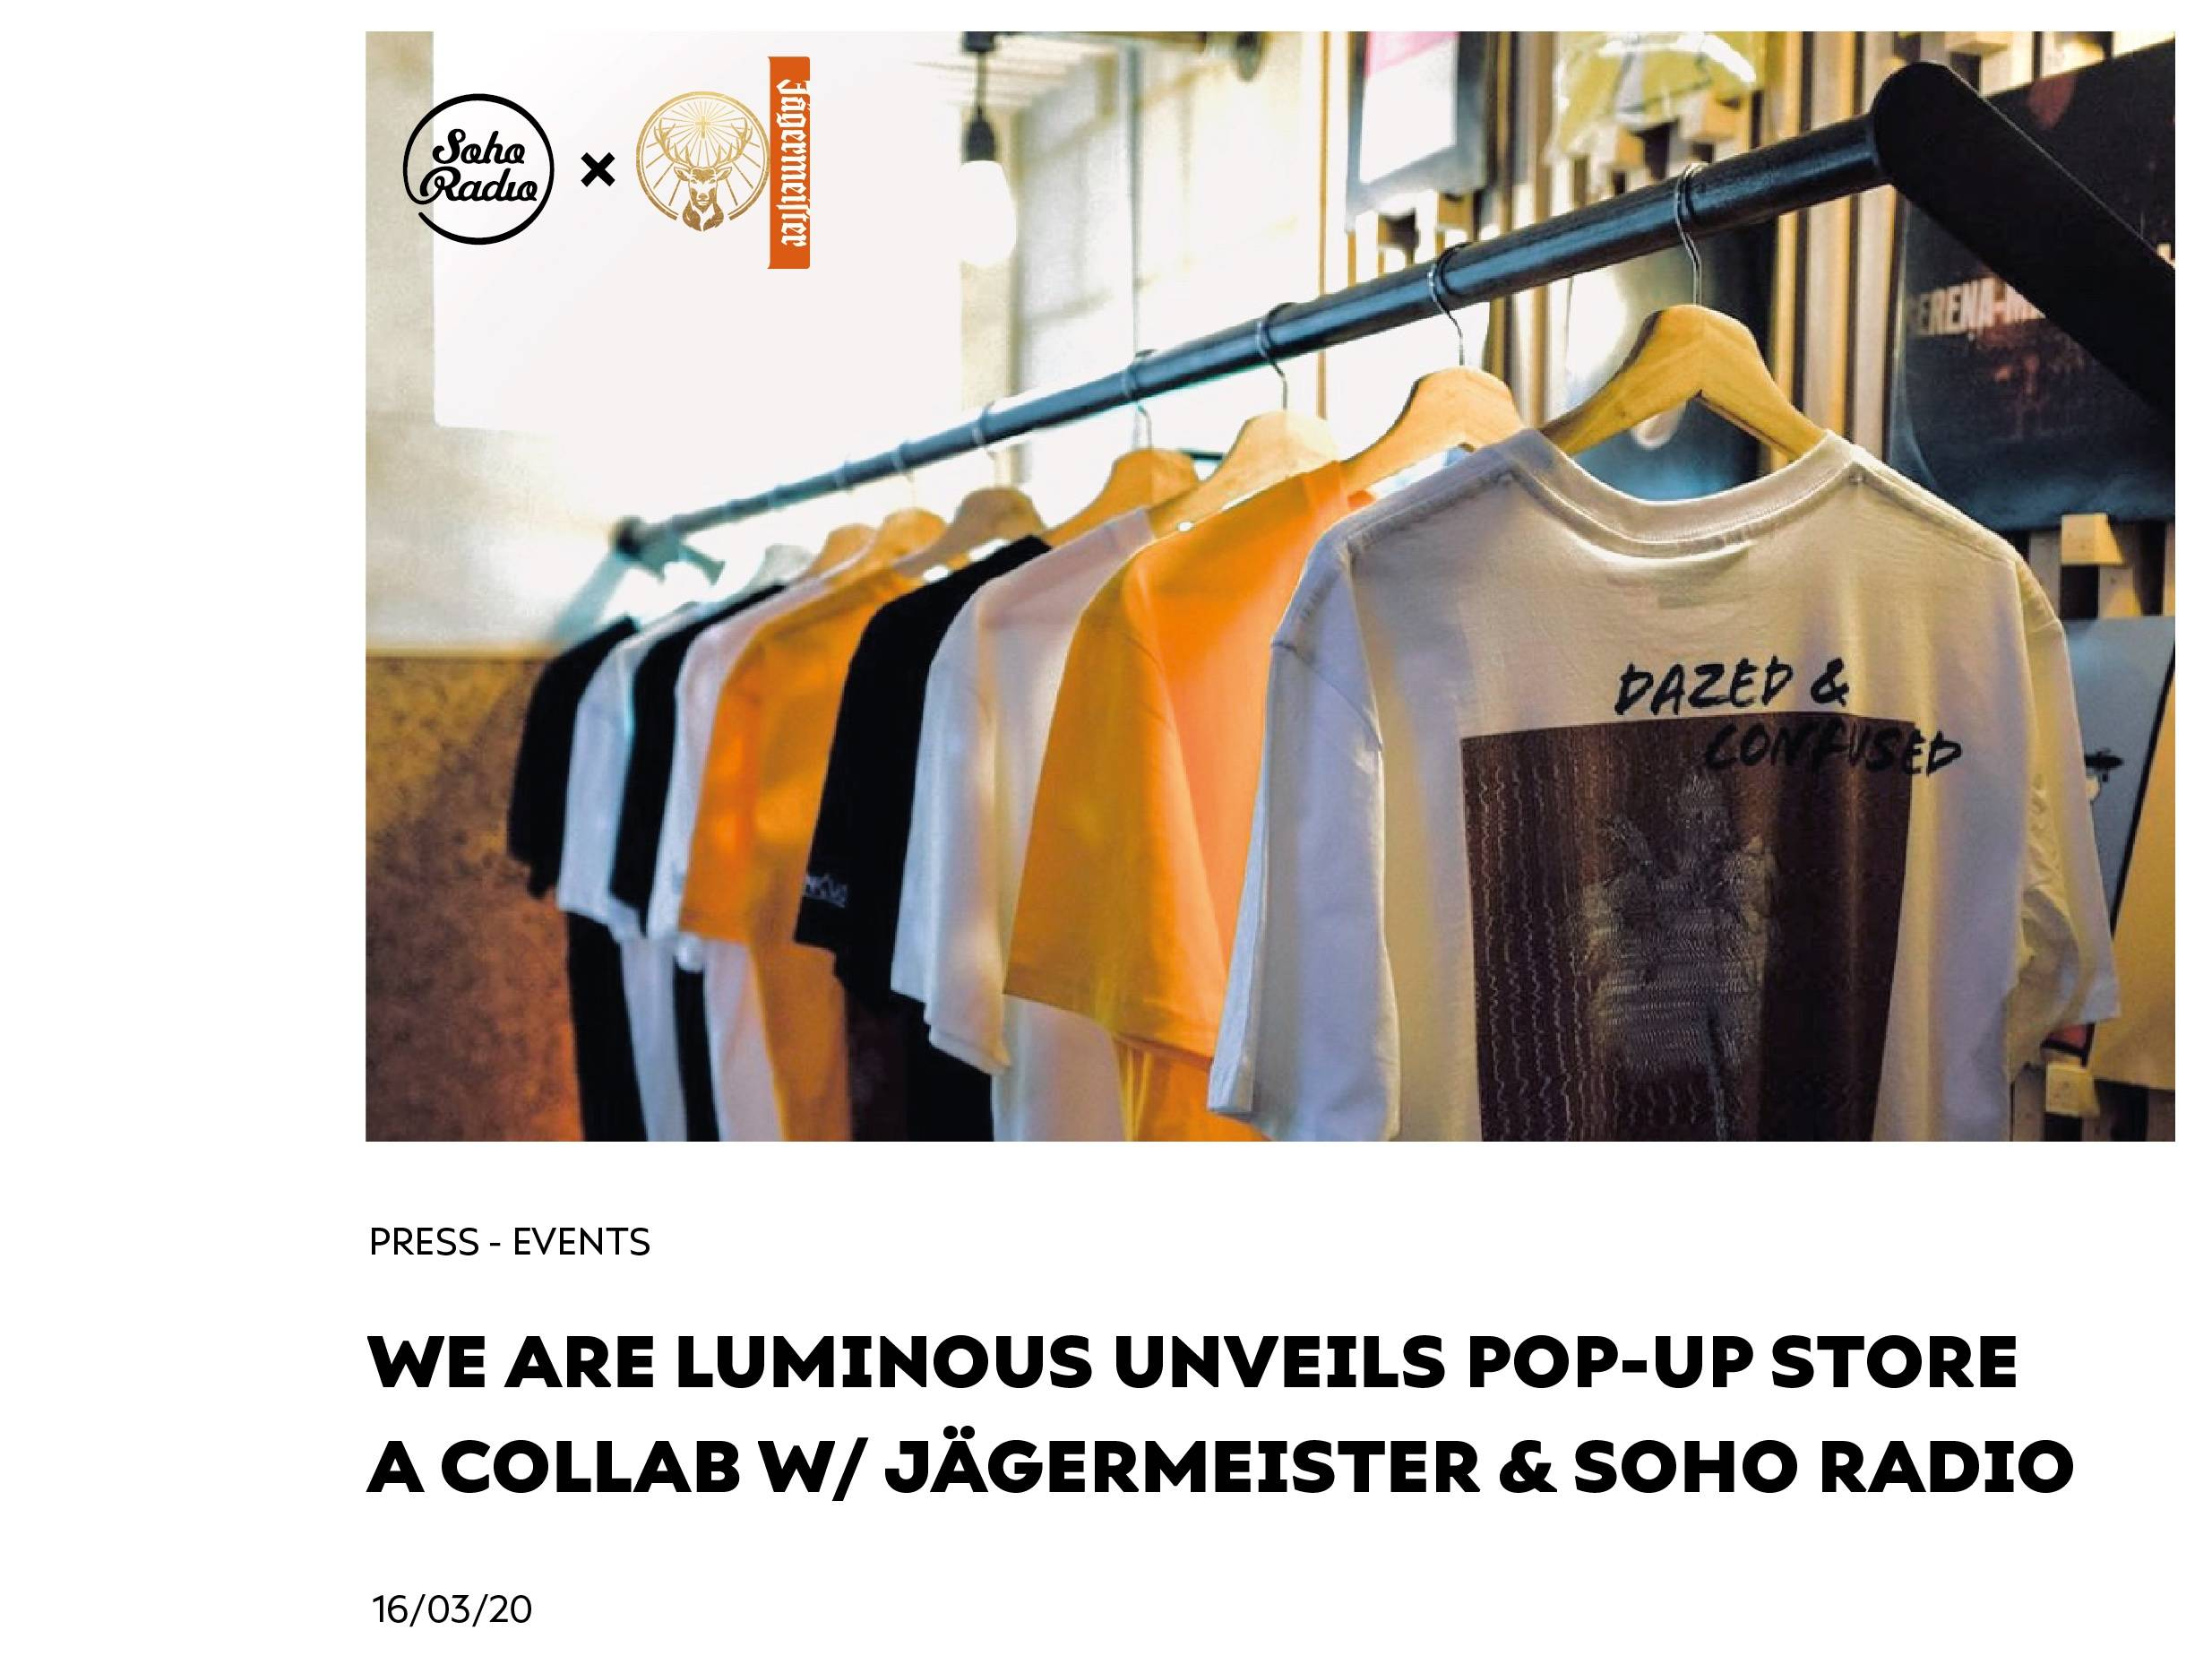 We Are Luminous Unveils Pop-Up Store A Collab W/ Jagermeister & Soho Radio